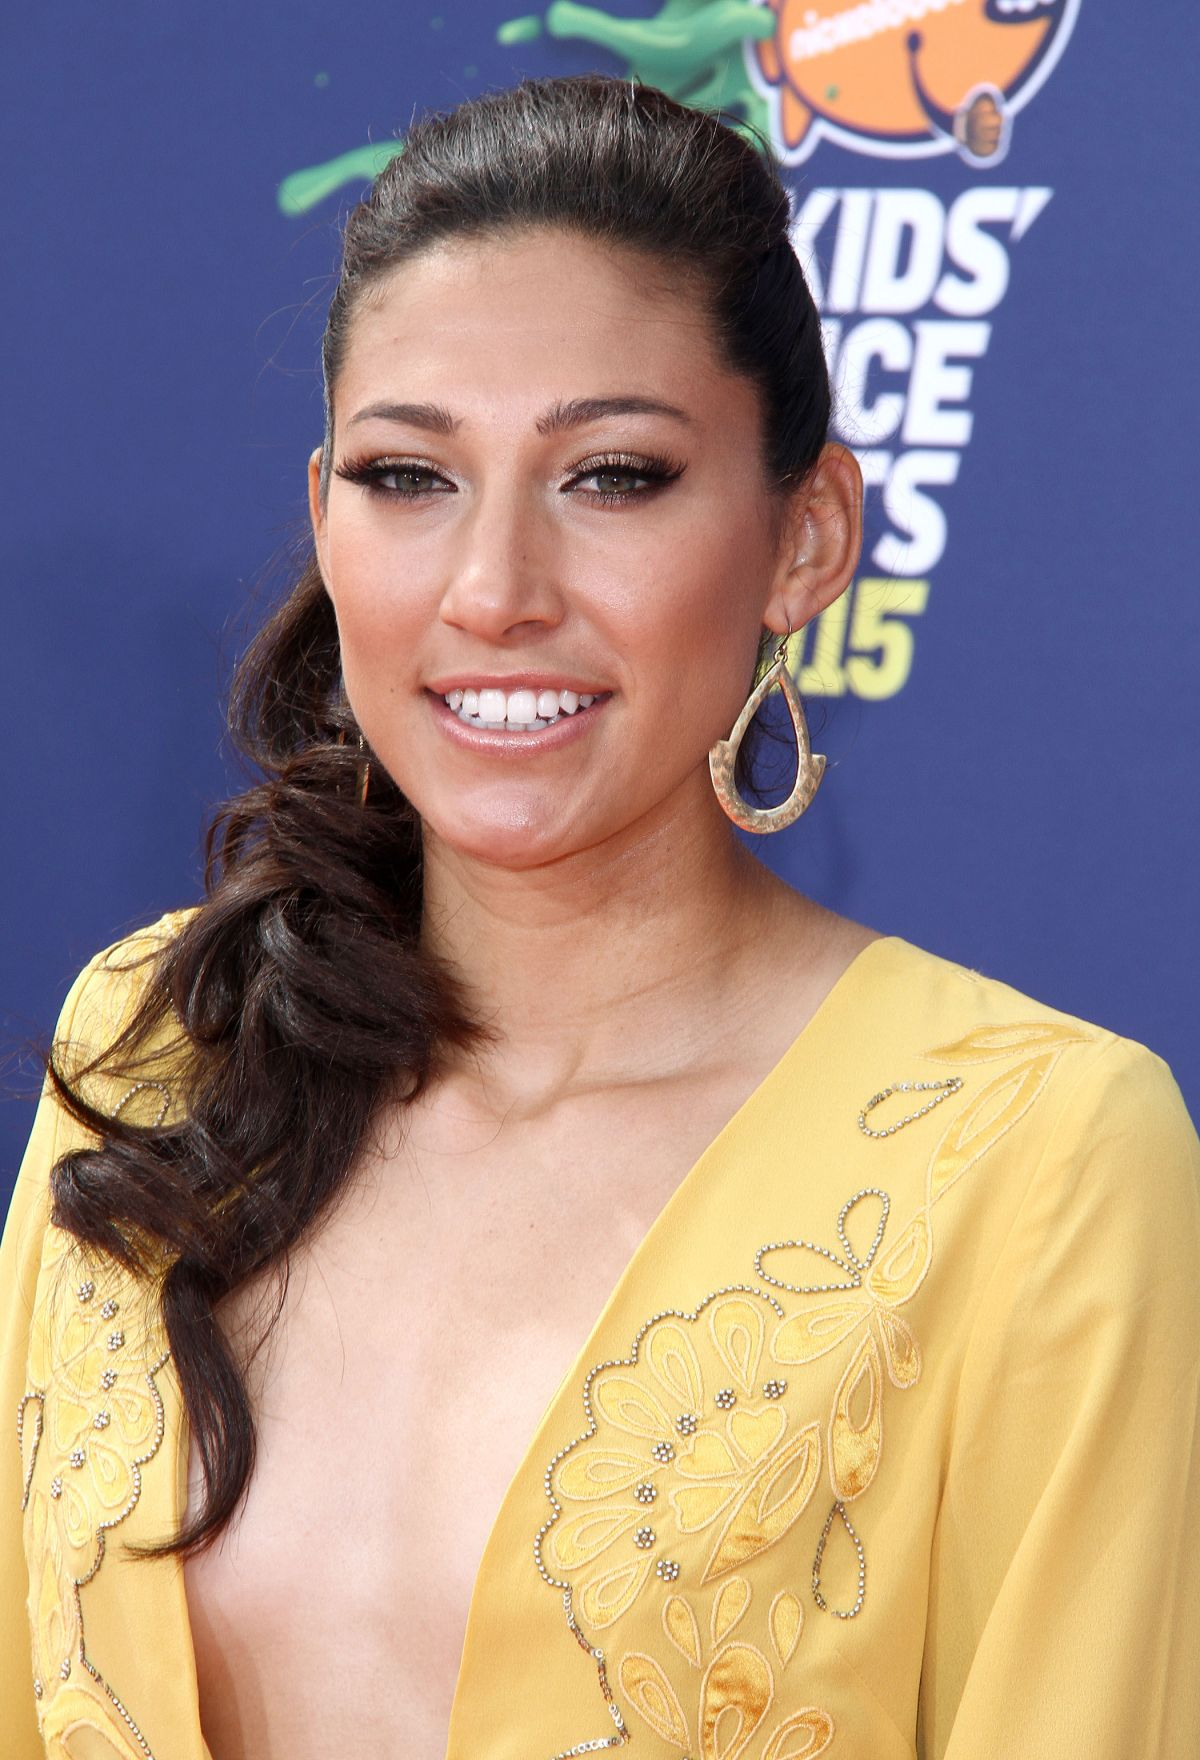 Christen Press At Nick's 2nd Annual Kids' Choice Sports